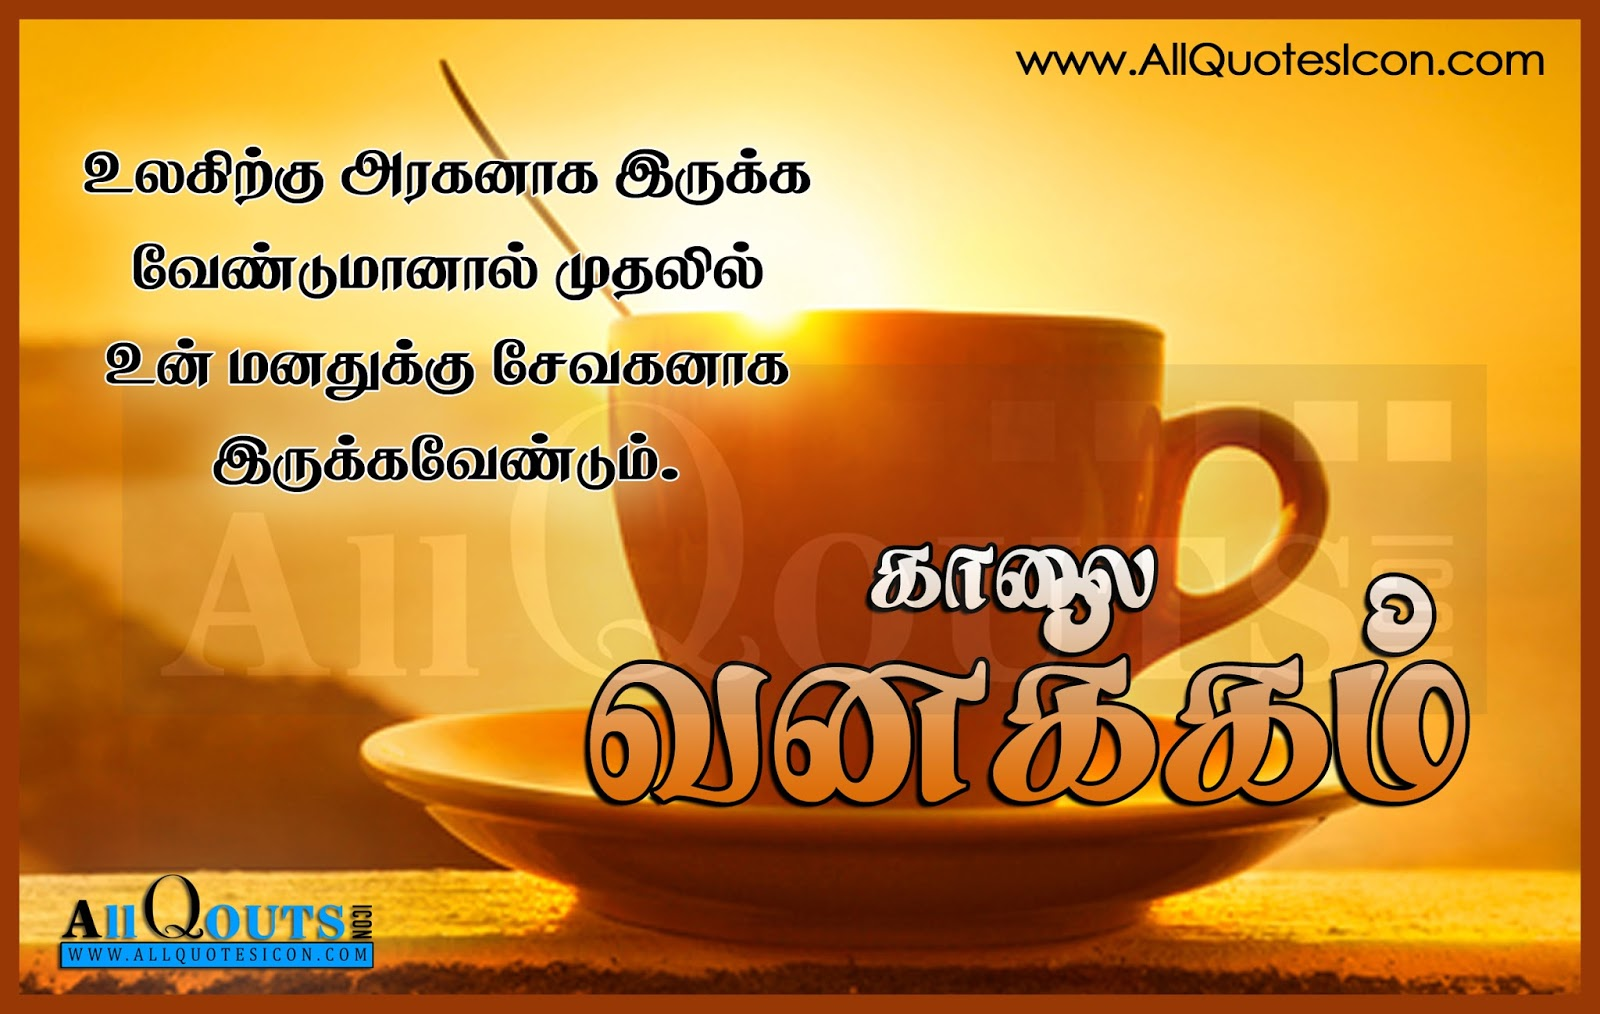 good morning images and quotes in tamil www